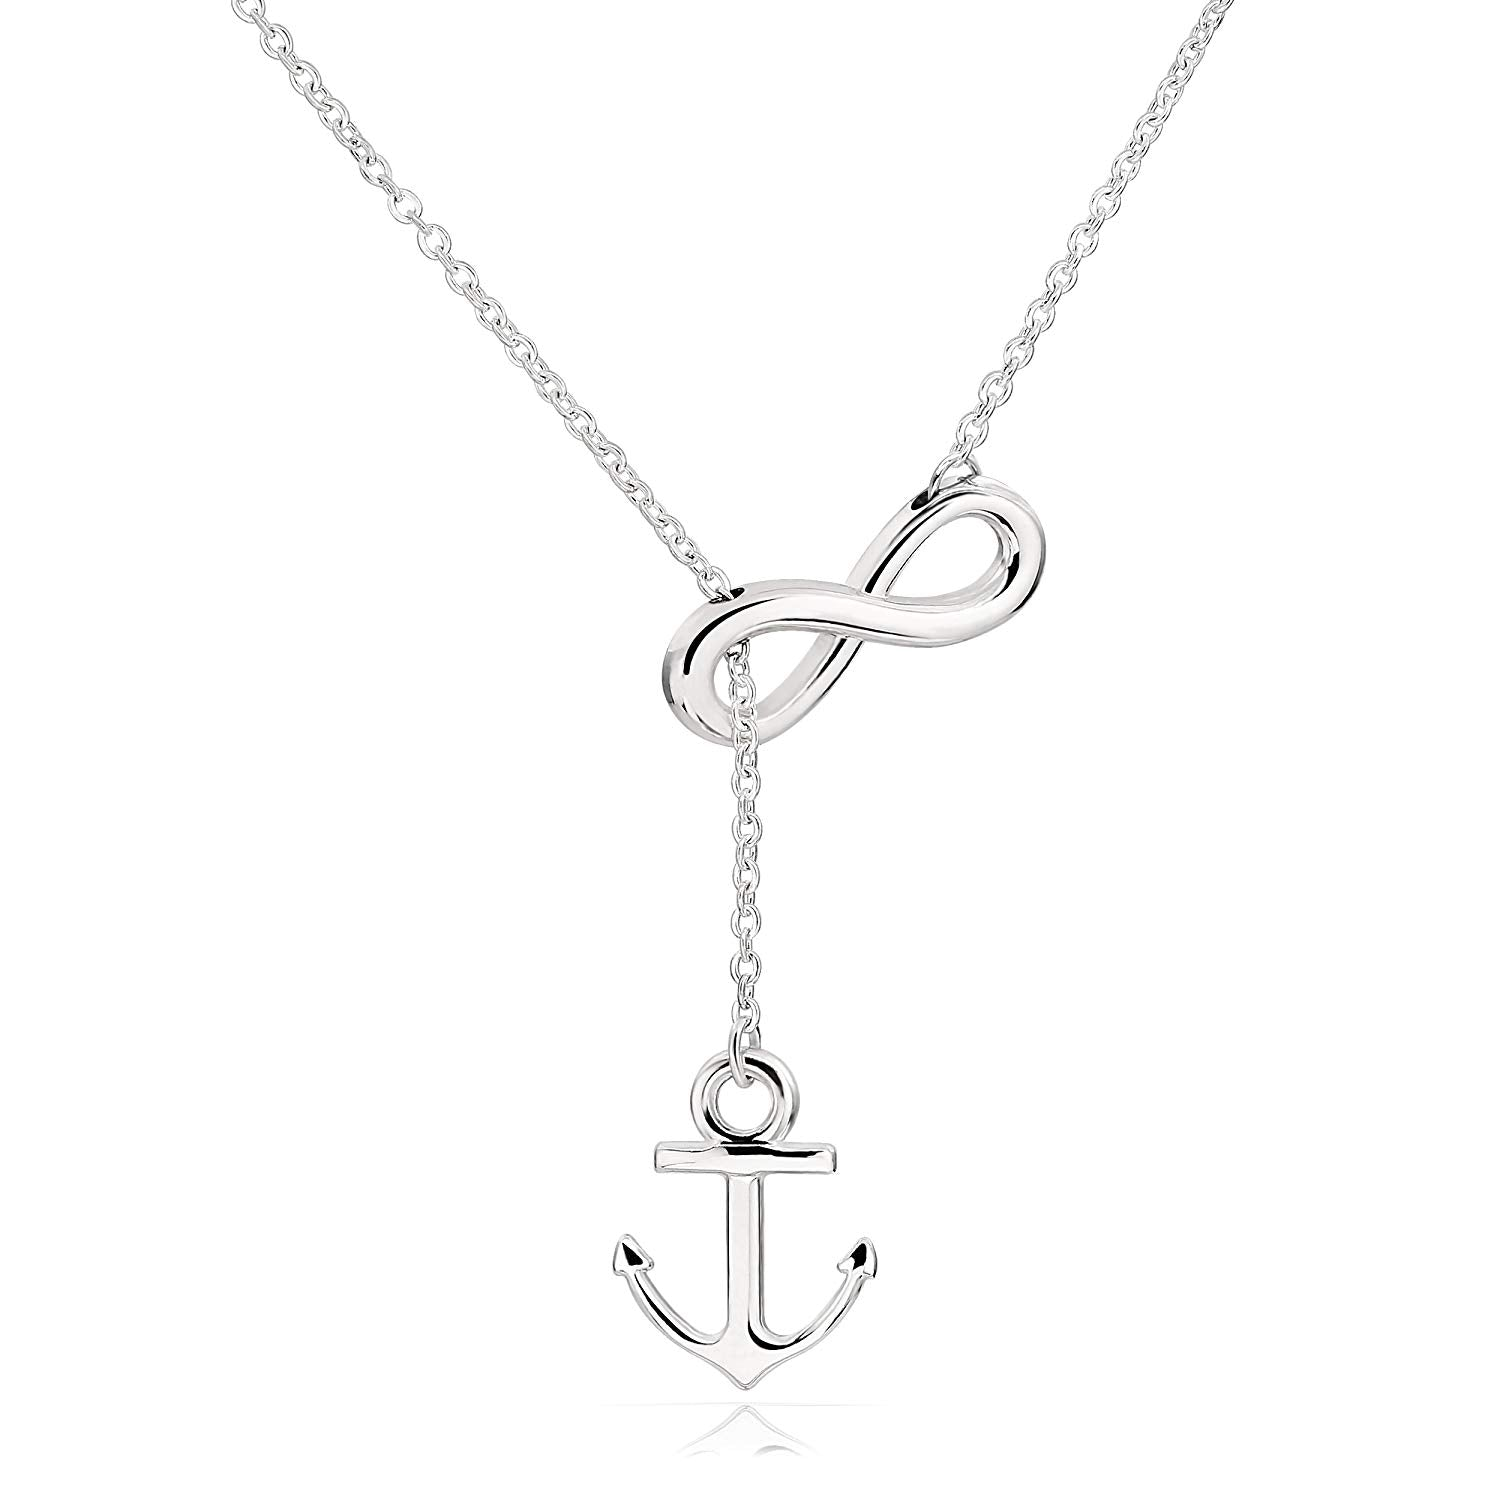 44bcf545787a8 Stainless Steel Anchor Infinity Y Shaped Lariat Style Necklace - EverMarker